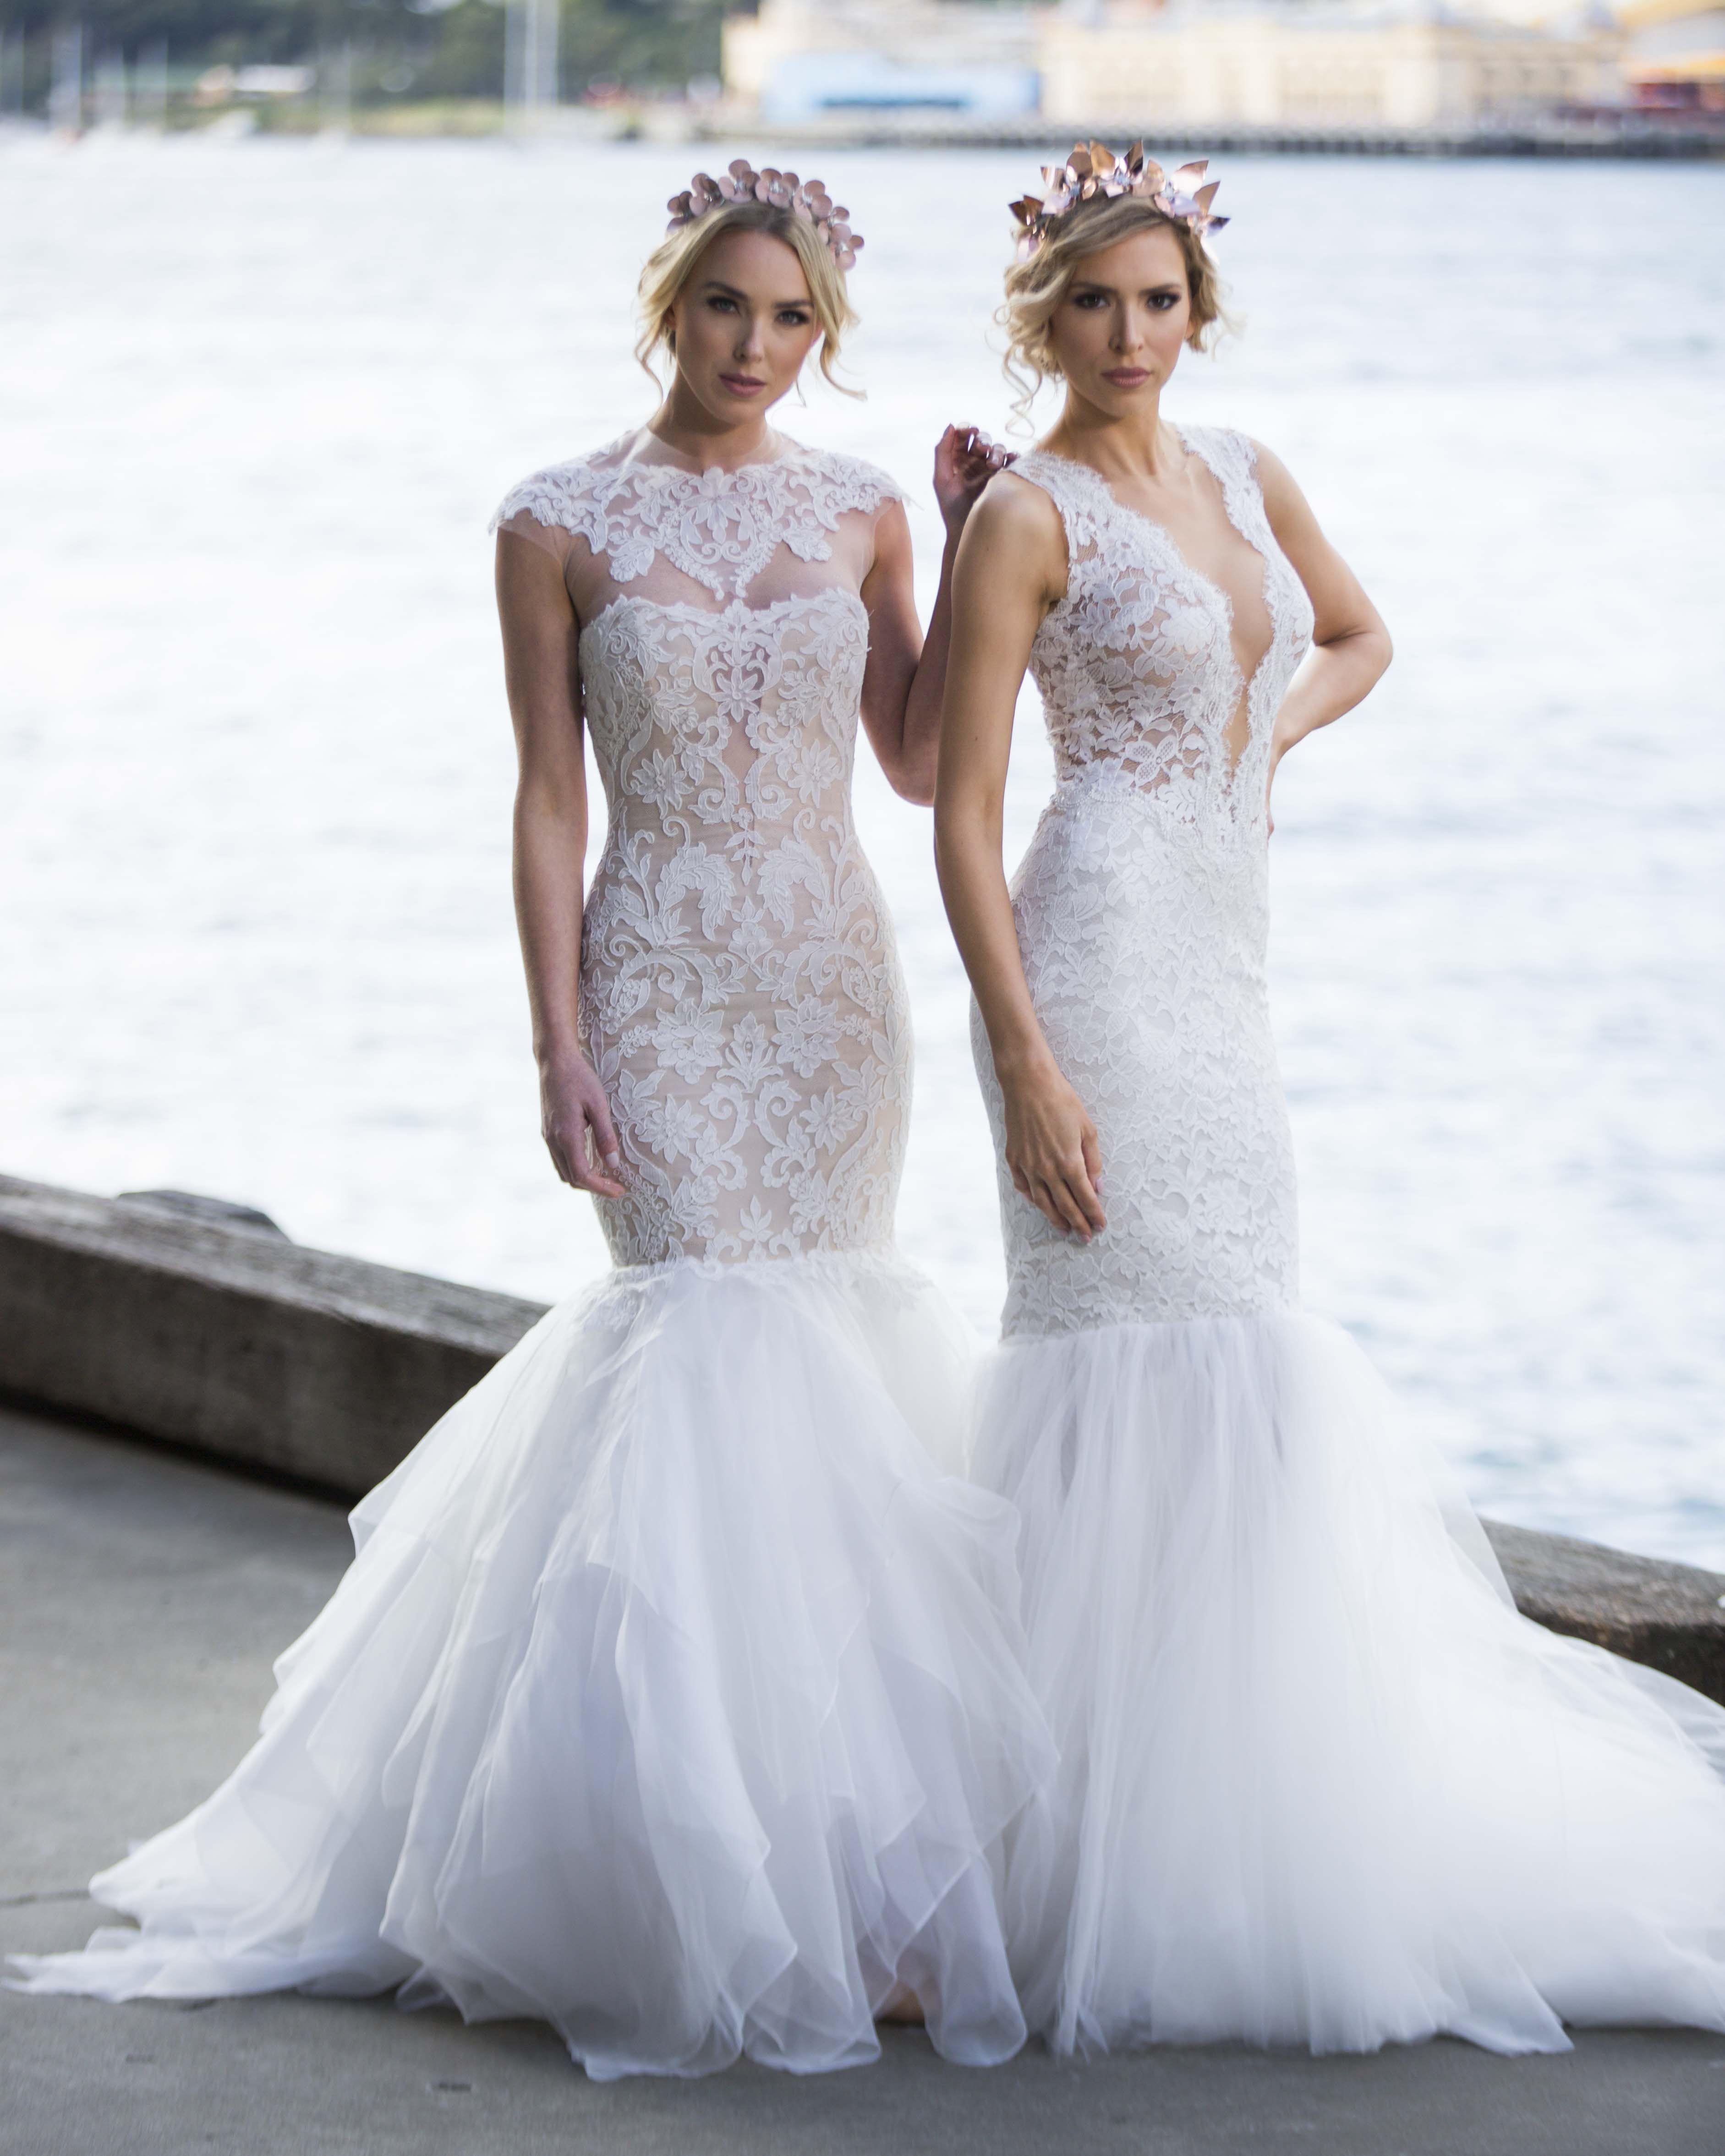 Beach wedding looks  Gorgeous Sydney Photo shoot by eternalbridal featuring Ines by Ines